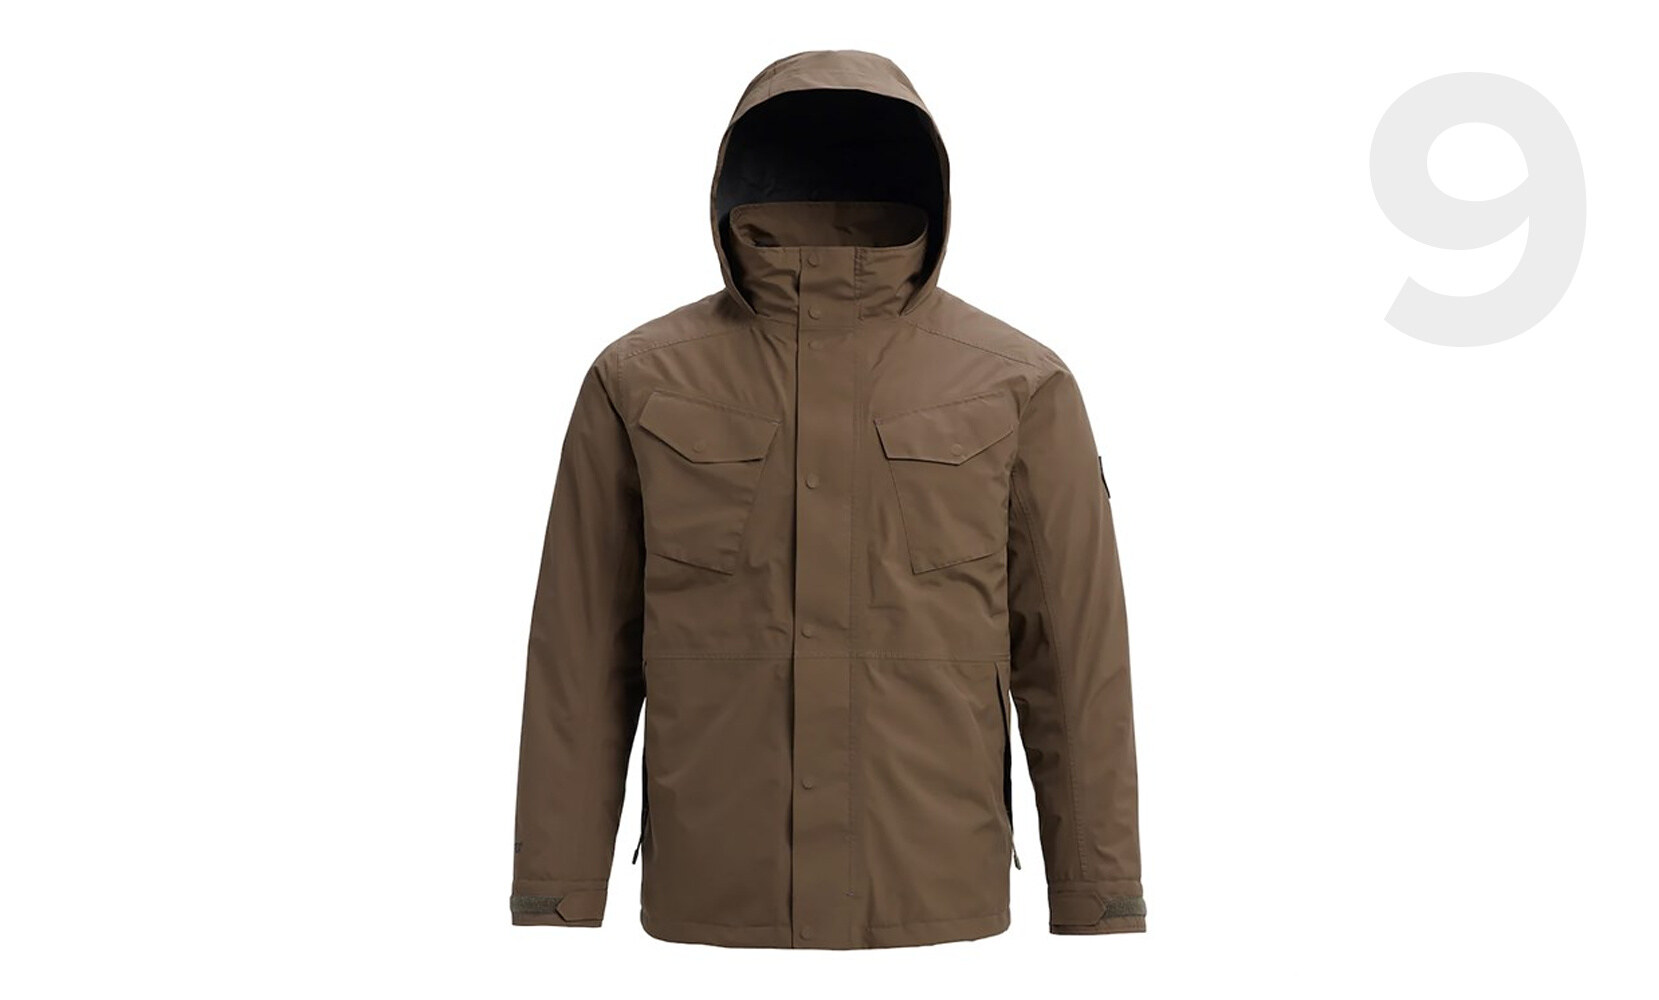 Burton Edgecomb jacket